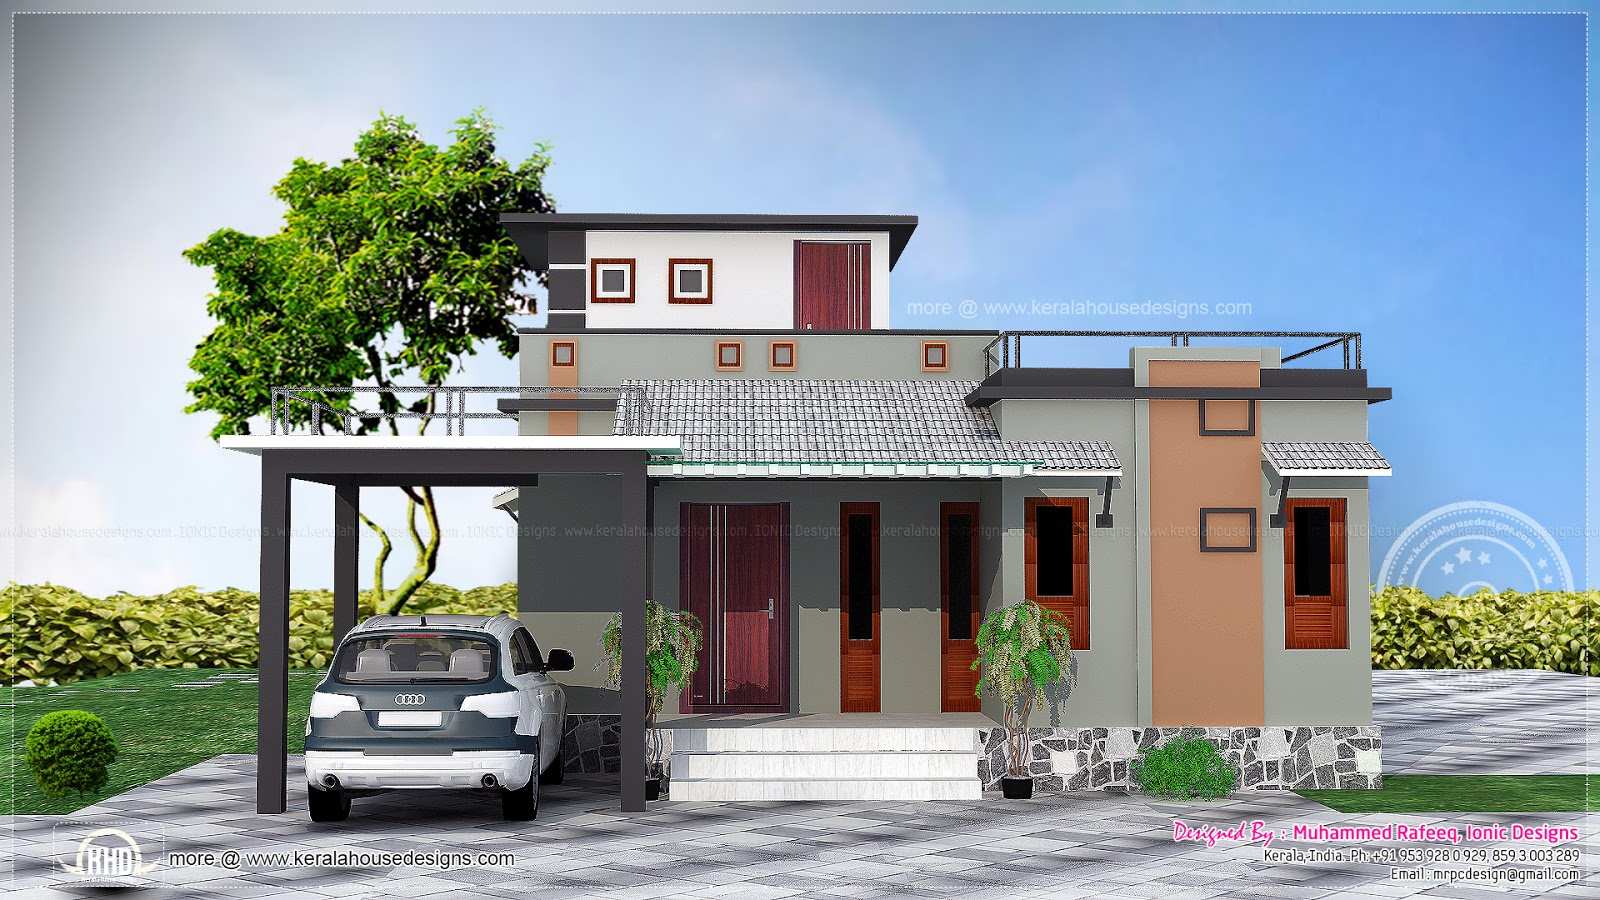 1016 Sq Feet Small Budget House Kerala Home Design And